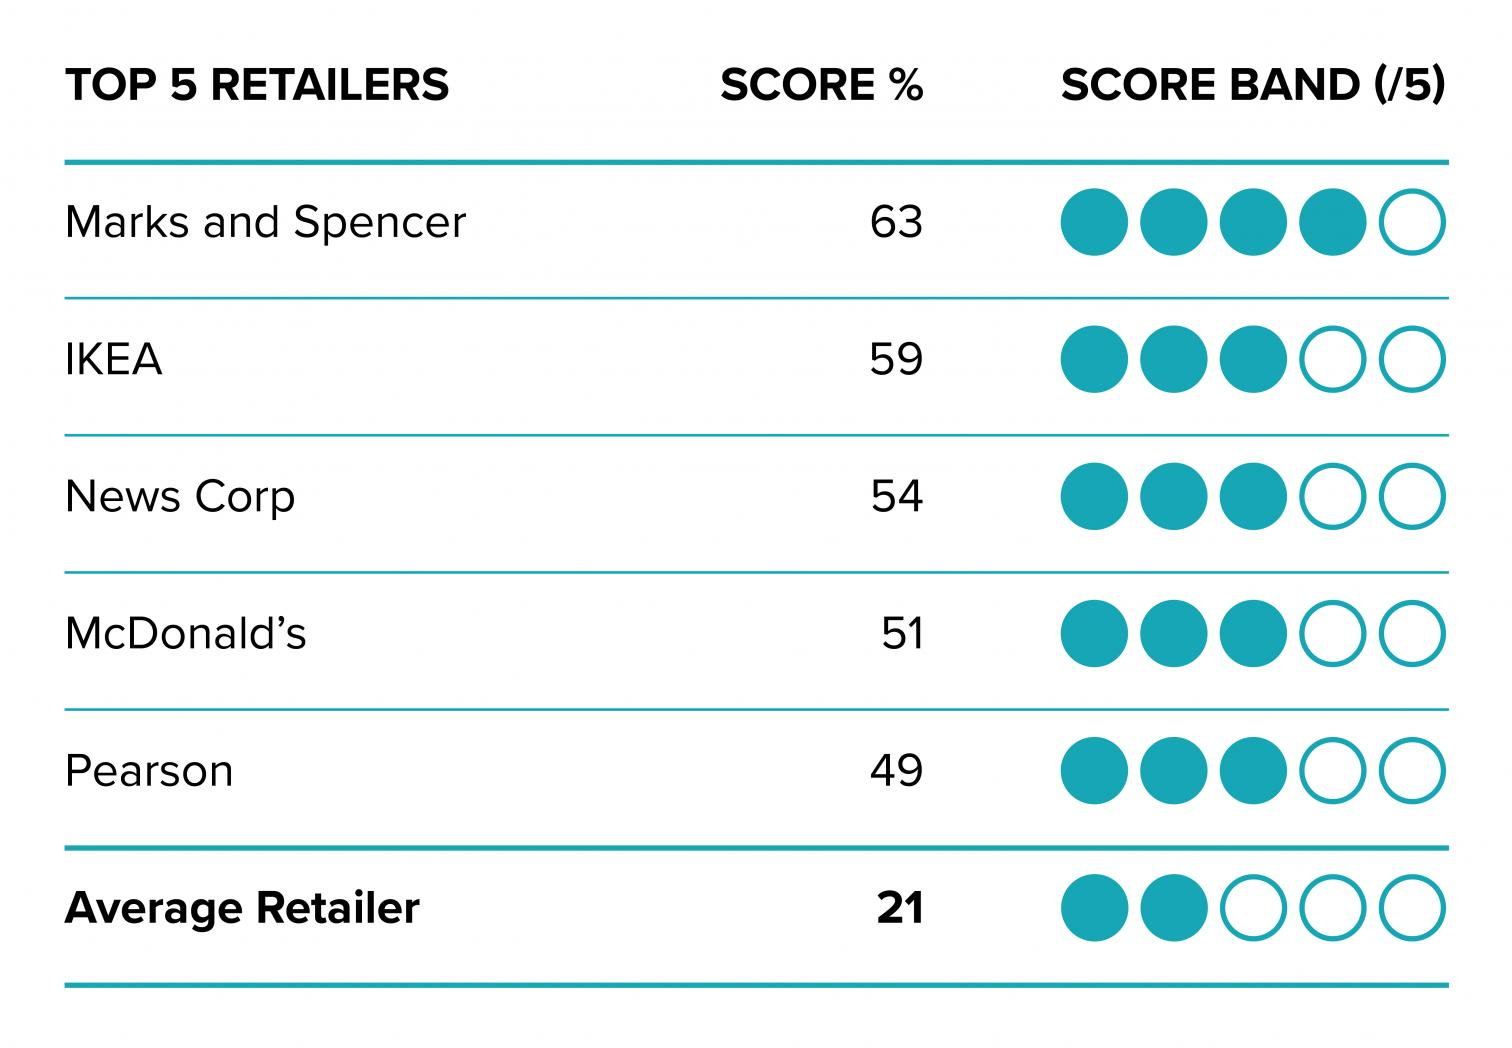 Leader boards showing top five retailers